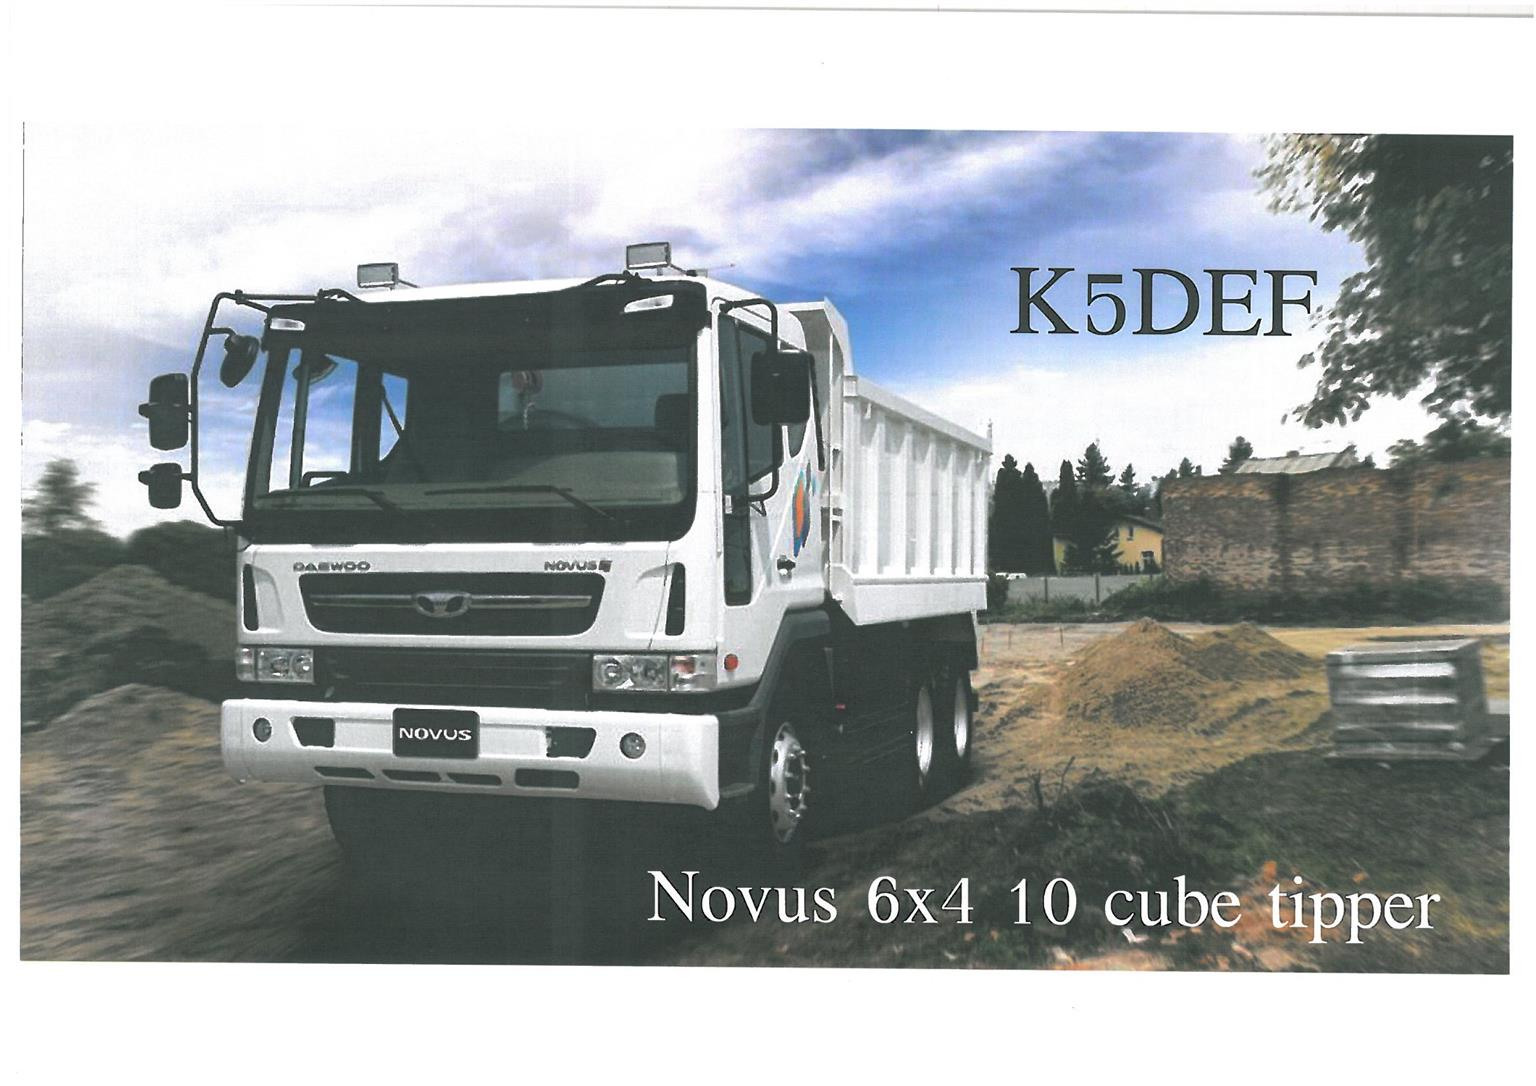 DAEWOO NOVUS , K5DEF , 6X4 , 10 Cube , 15 Ton ,  Tipper , Brand New  SPECIAL  PRICE  WHILST  STOCK  LASTS